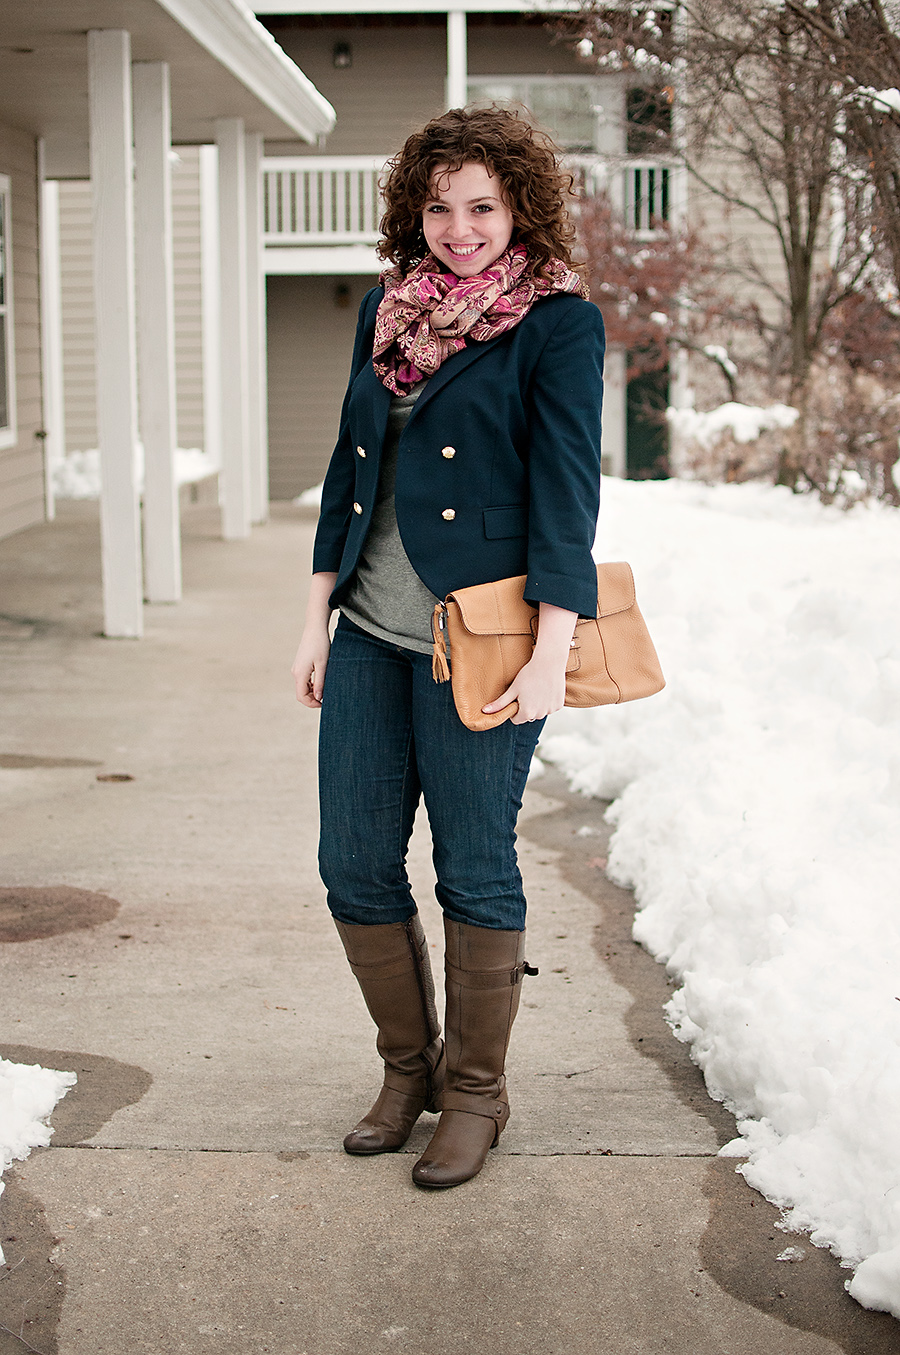 Blue Blazer with Boots and a scarf